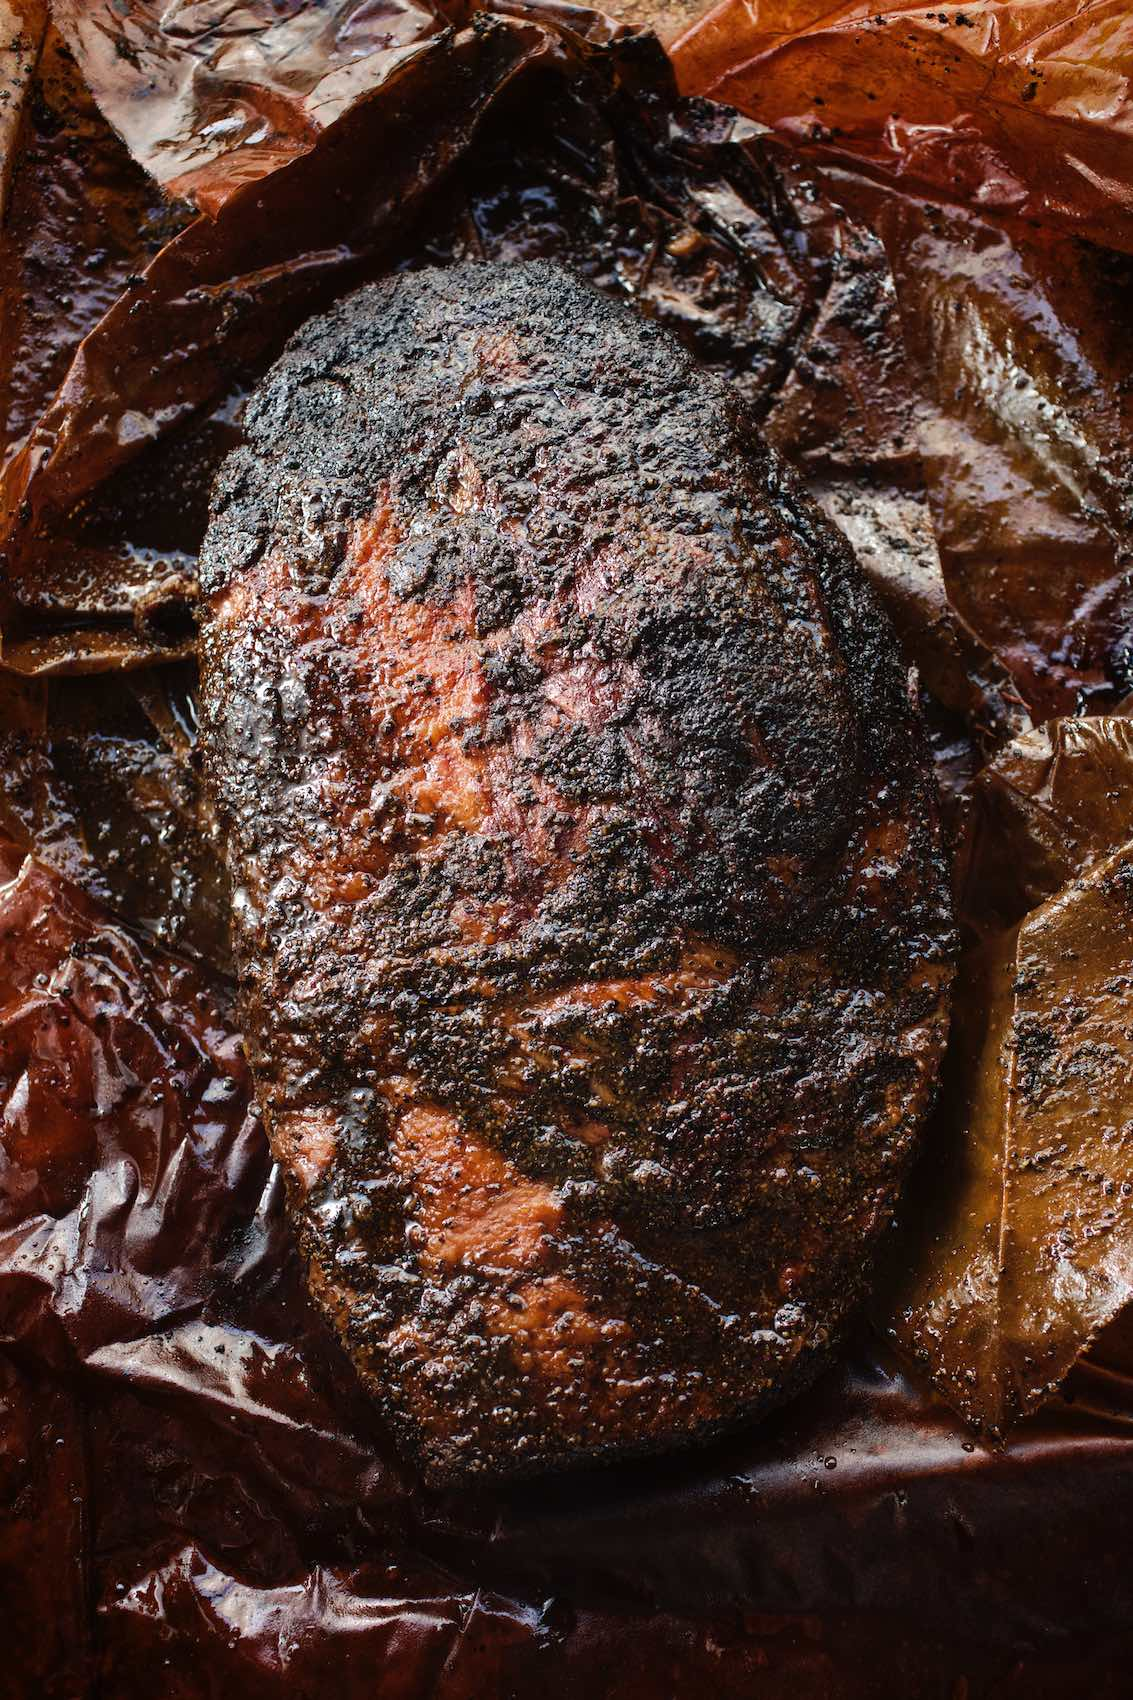 Jody Horton Photography - Smoked meat in parchment paper.